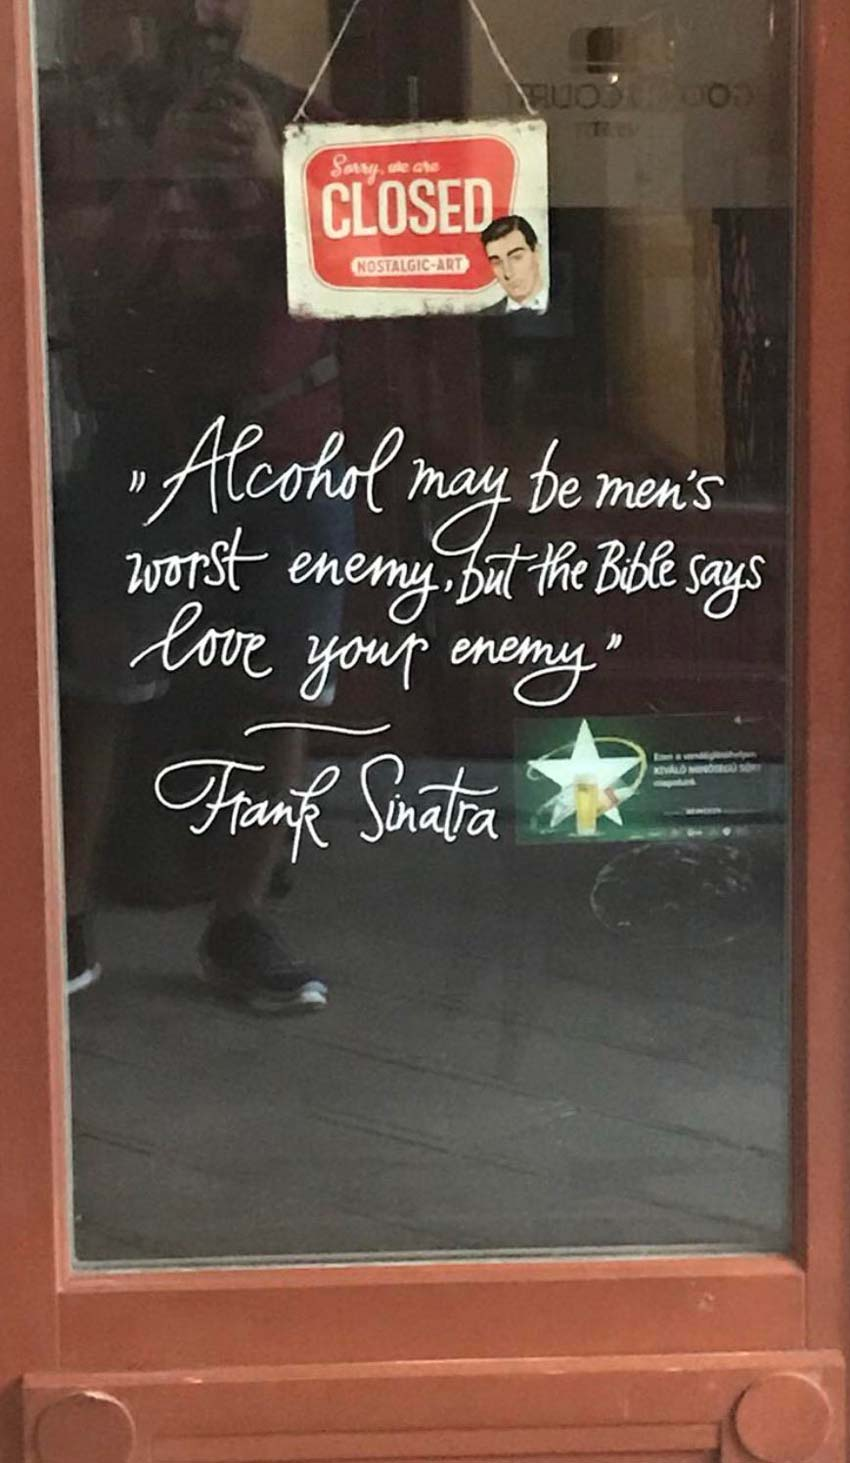 Found this quote on a pub door